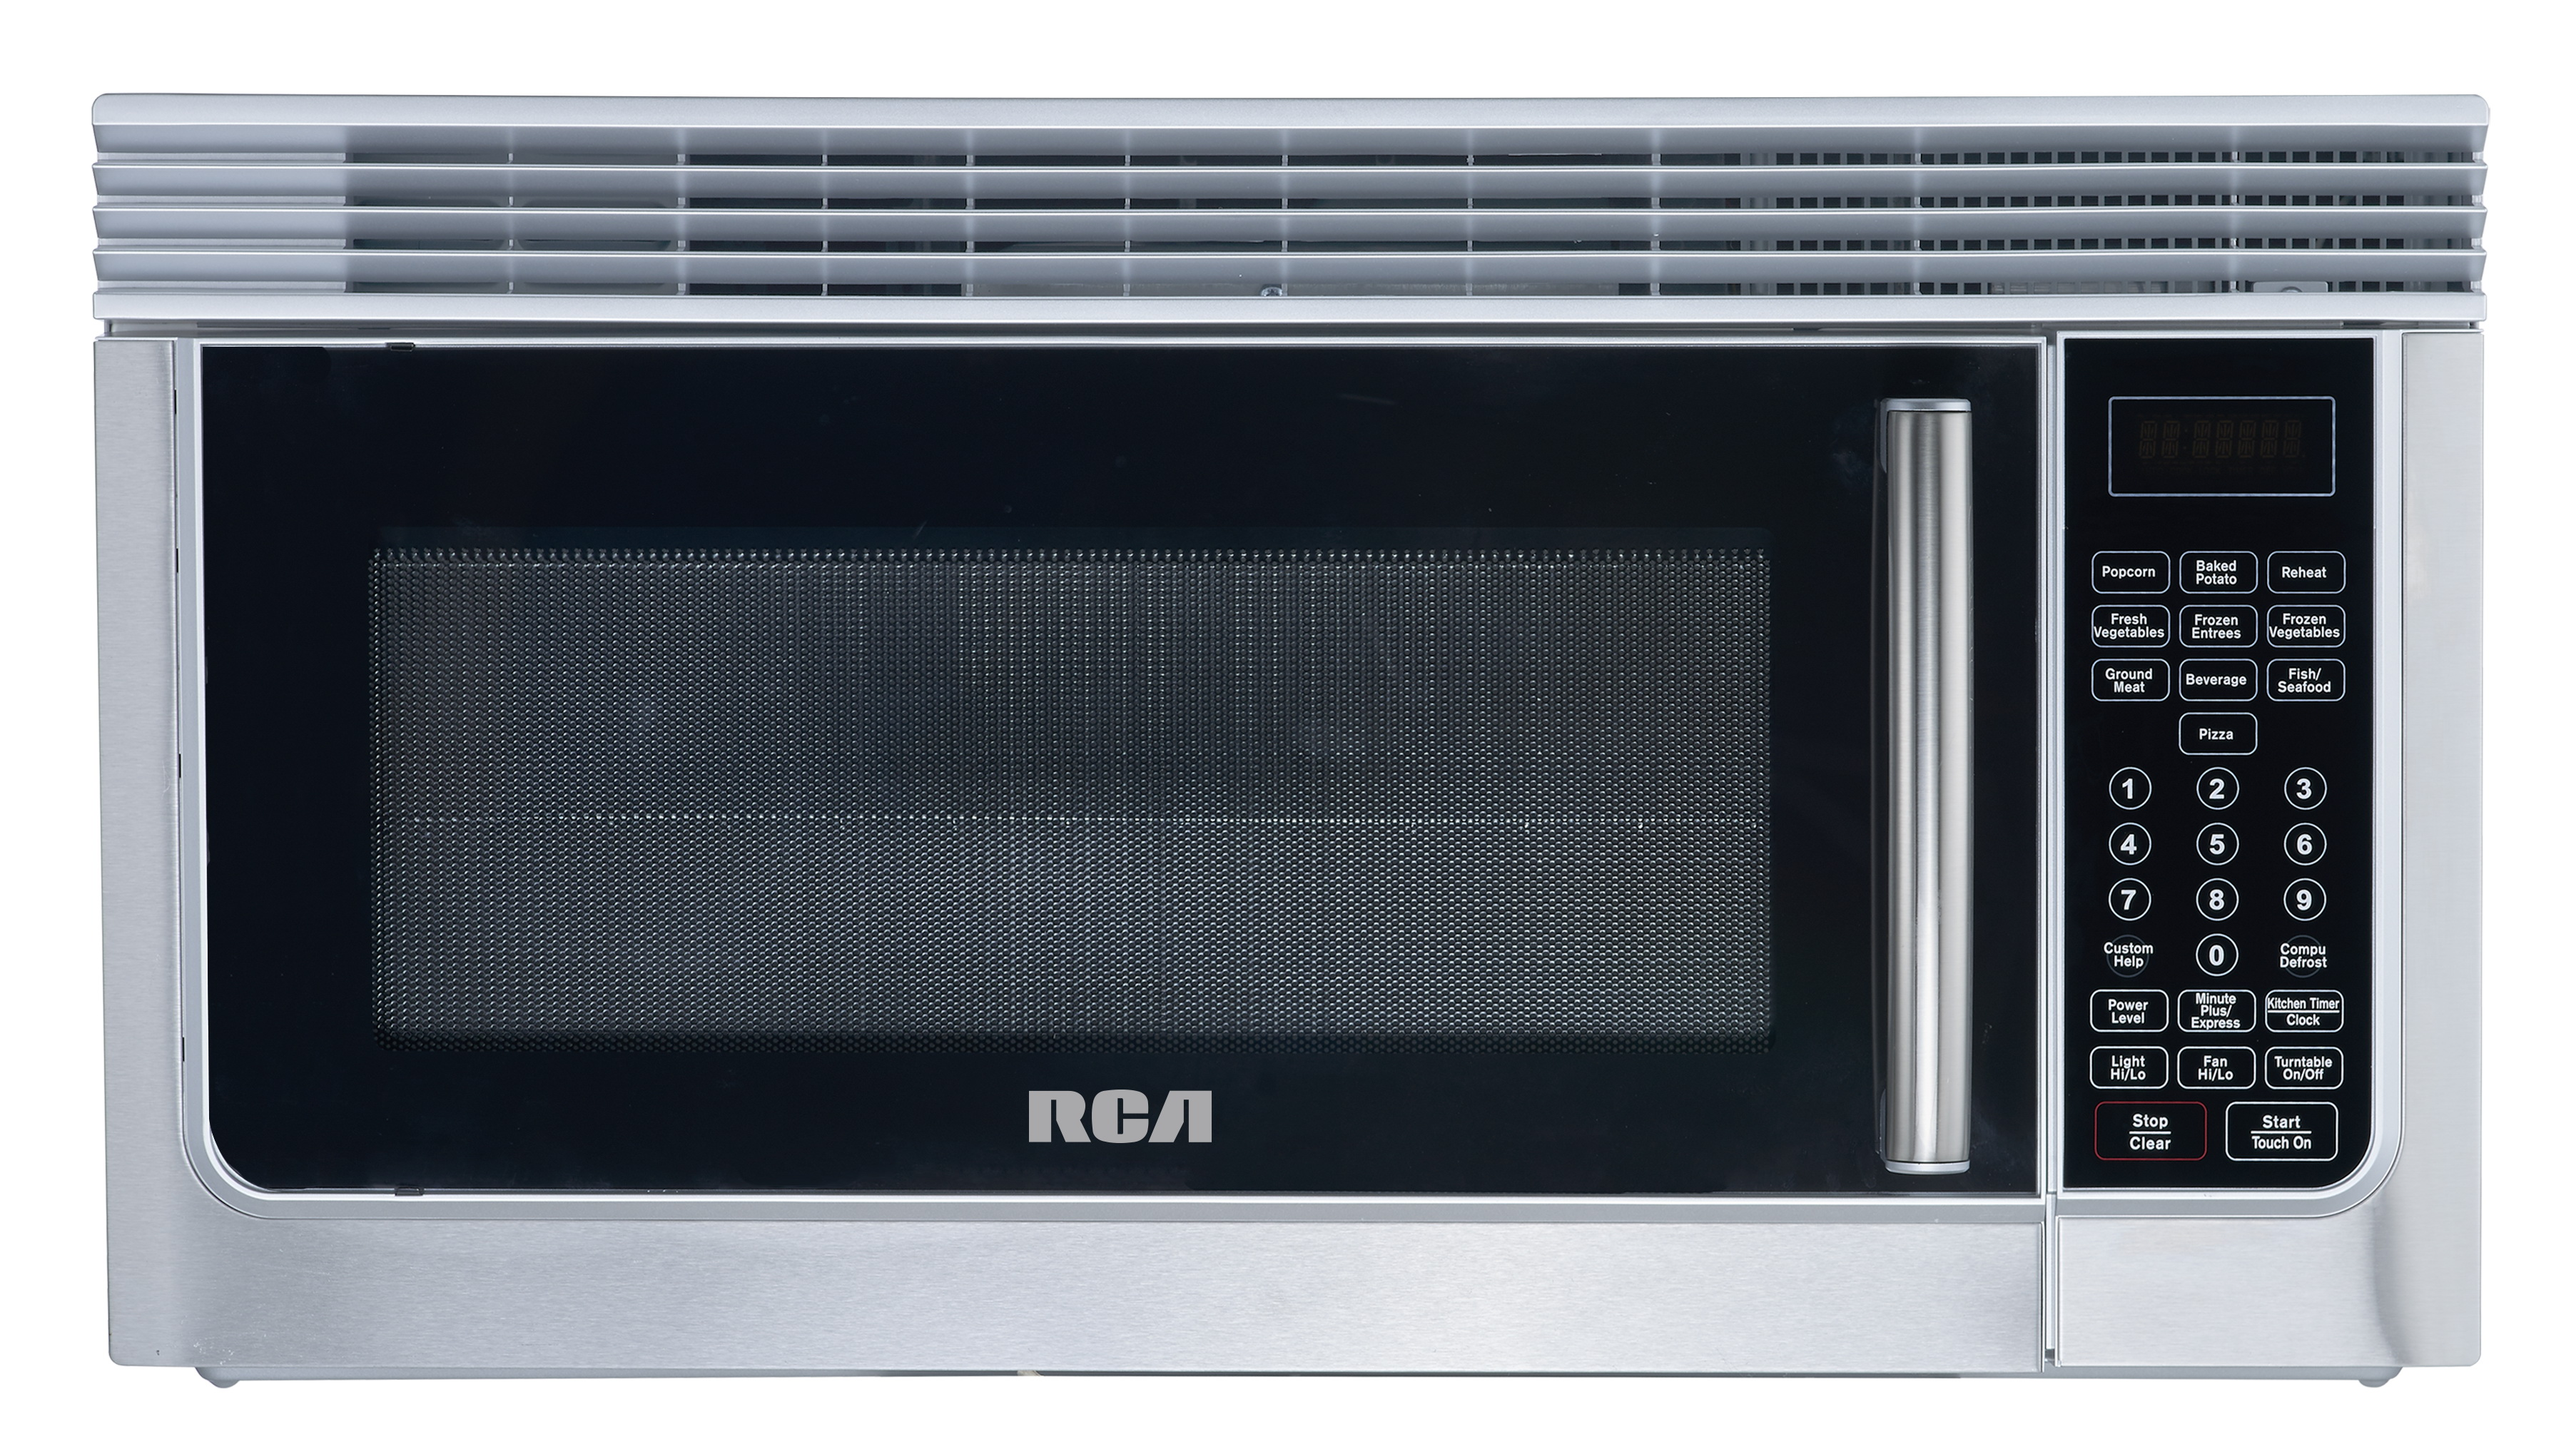 rca 1 6 cu ft over the range microwave oven stainless steel rmw1636ss